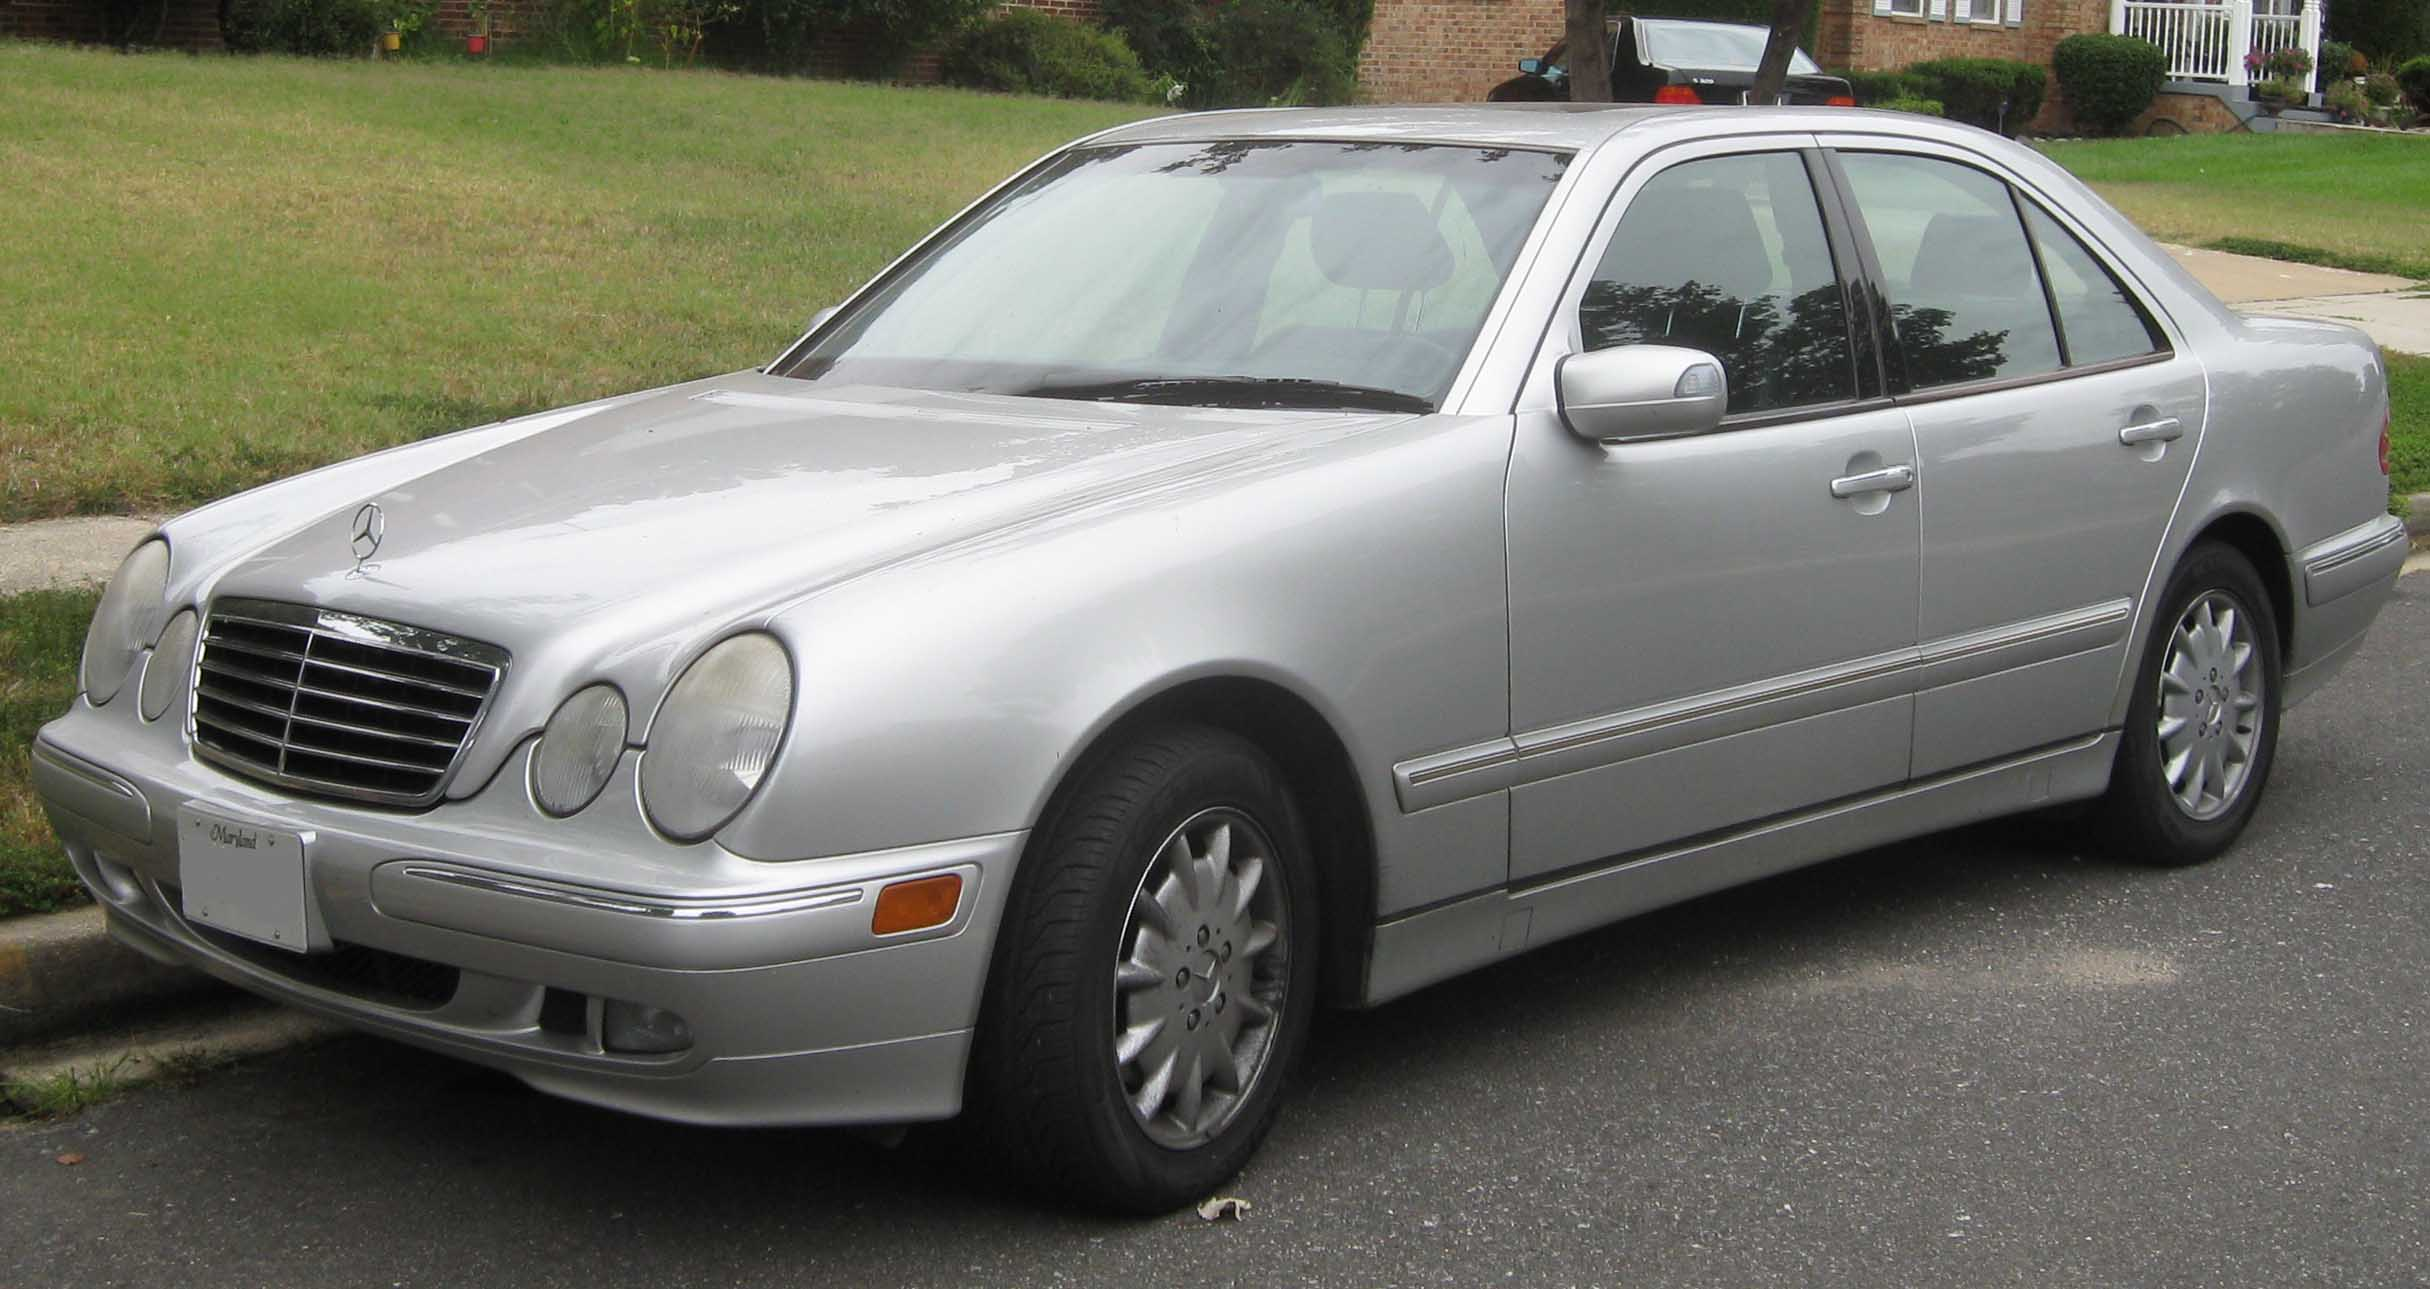 1997 mercedes benz e class information and photos for Facts about mercedes benz